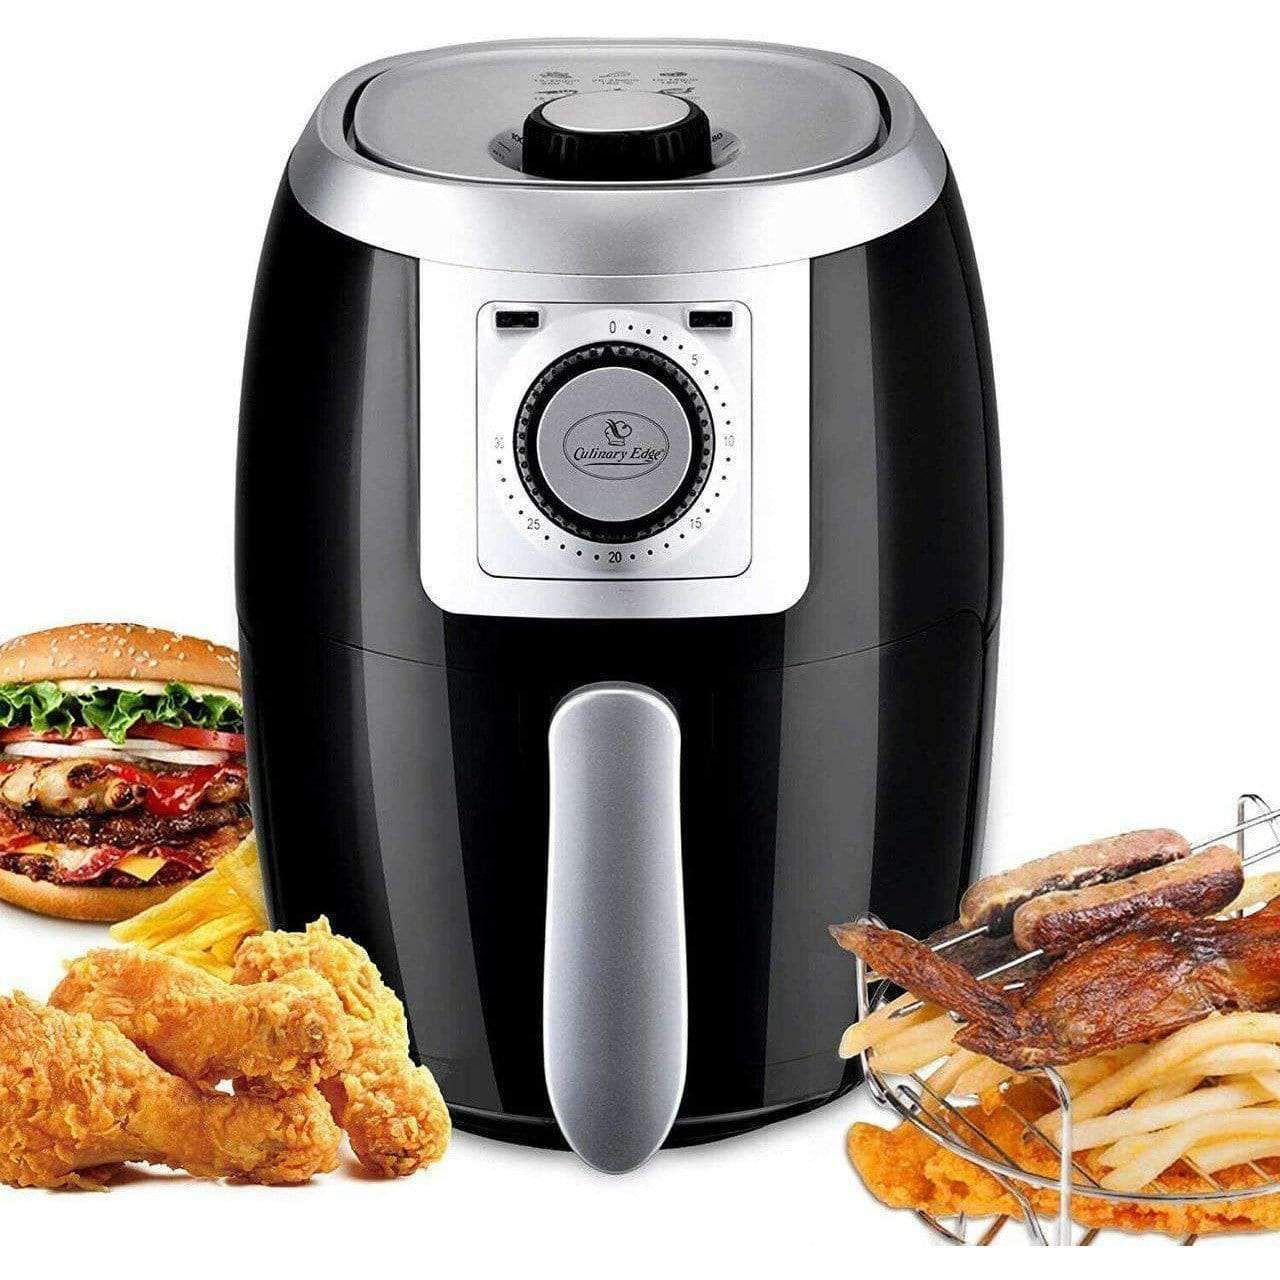 2.1QT Compact Electric Small Air Fryer and Oven Cooker